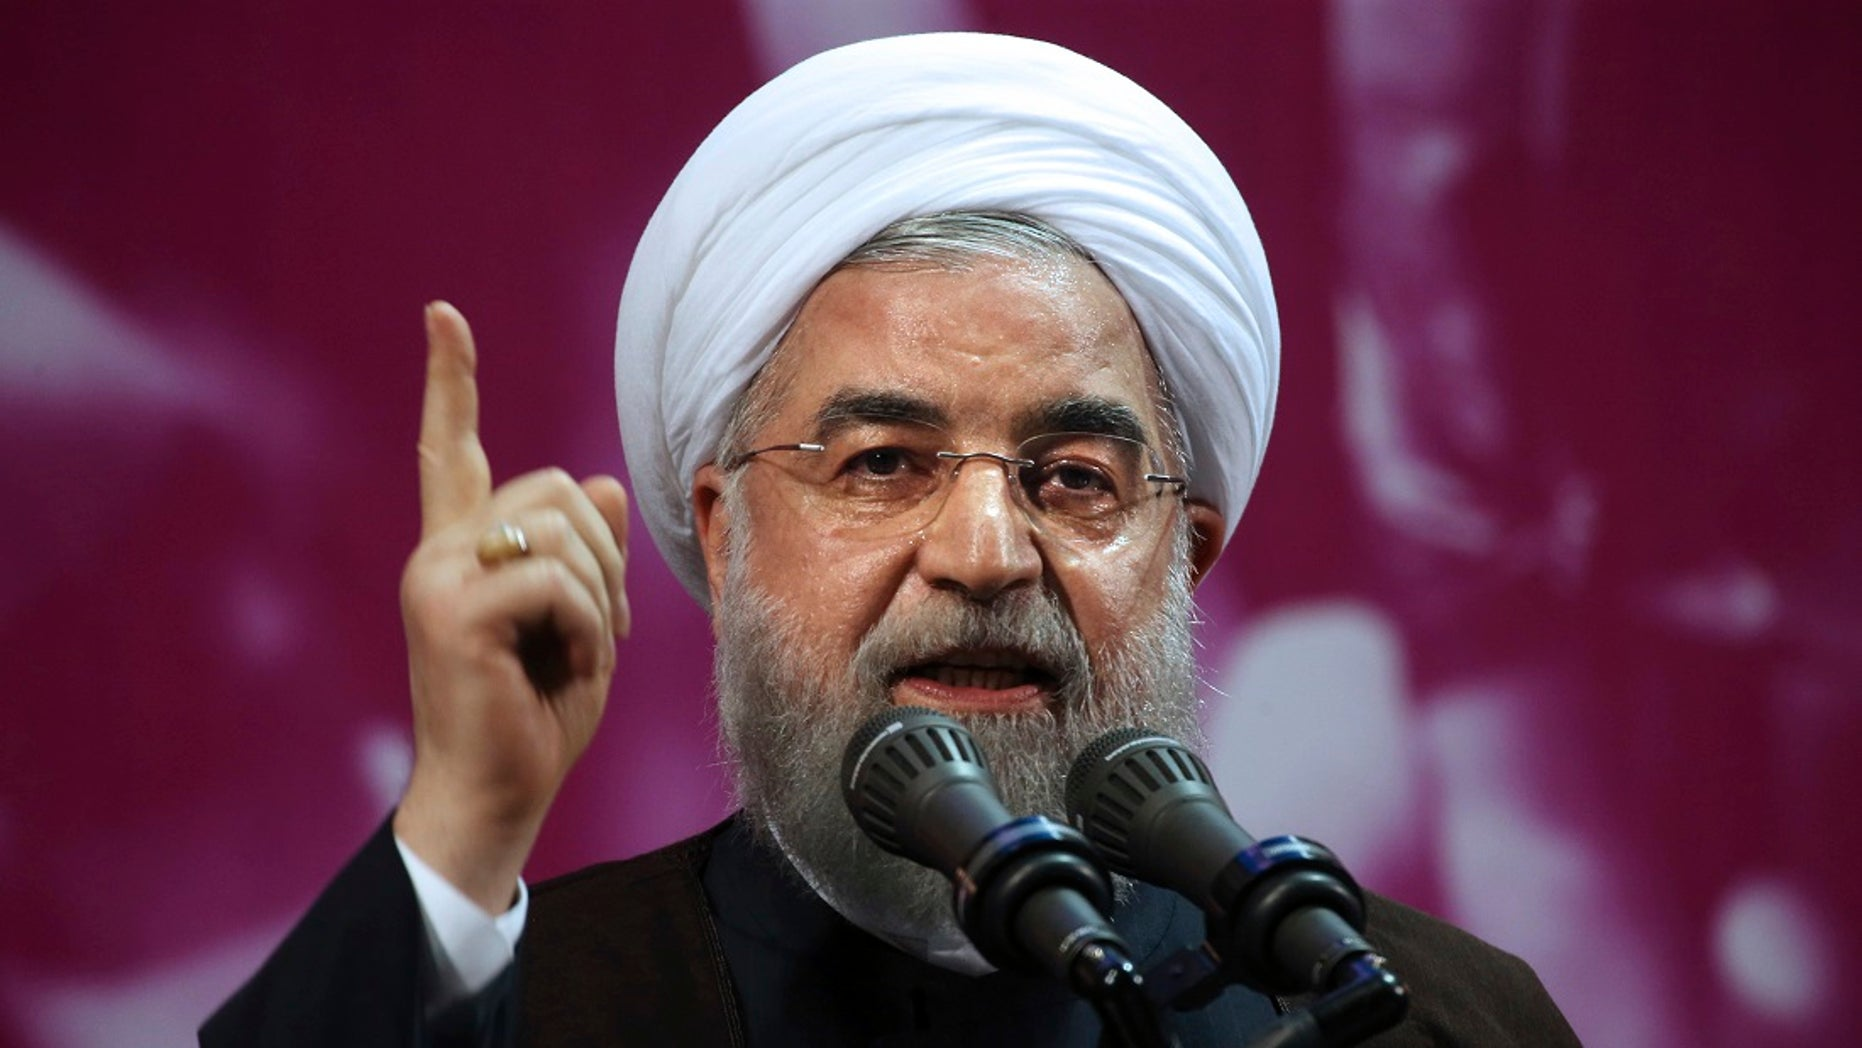 Iranian President Hassan Rouhani speaks in a campaign rally for May 19 presidential election in Tehran, Iran, Tuesday, May 9, 2017. He faces cleric Ebrahim Raisi.